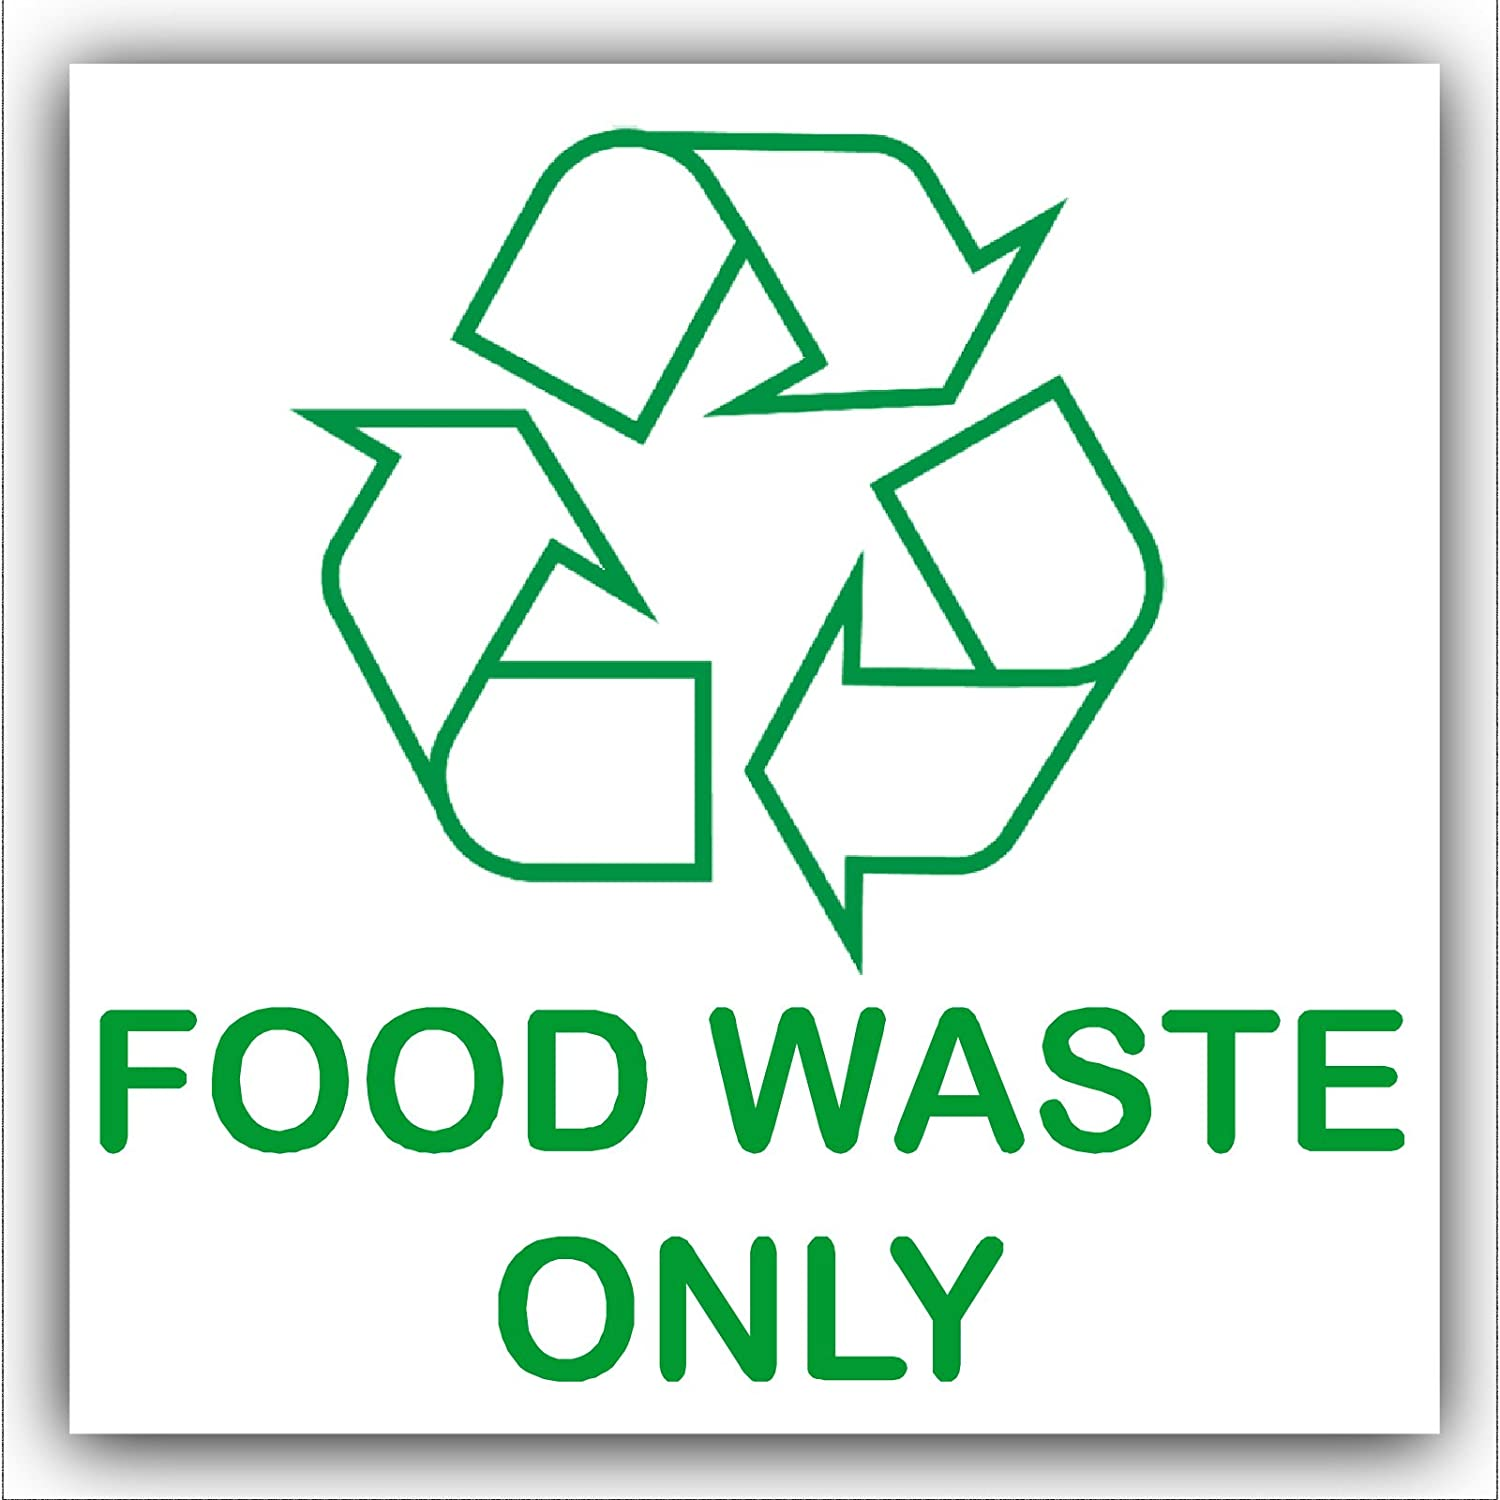 food waste 4 essay On world environment day 2015, join food tank and bcfn in putting an end to food waste around the world.